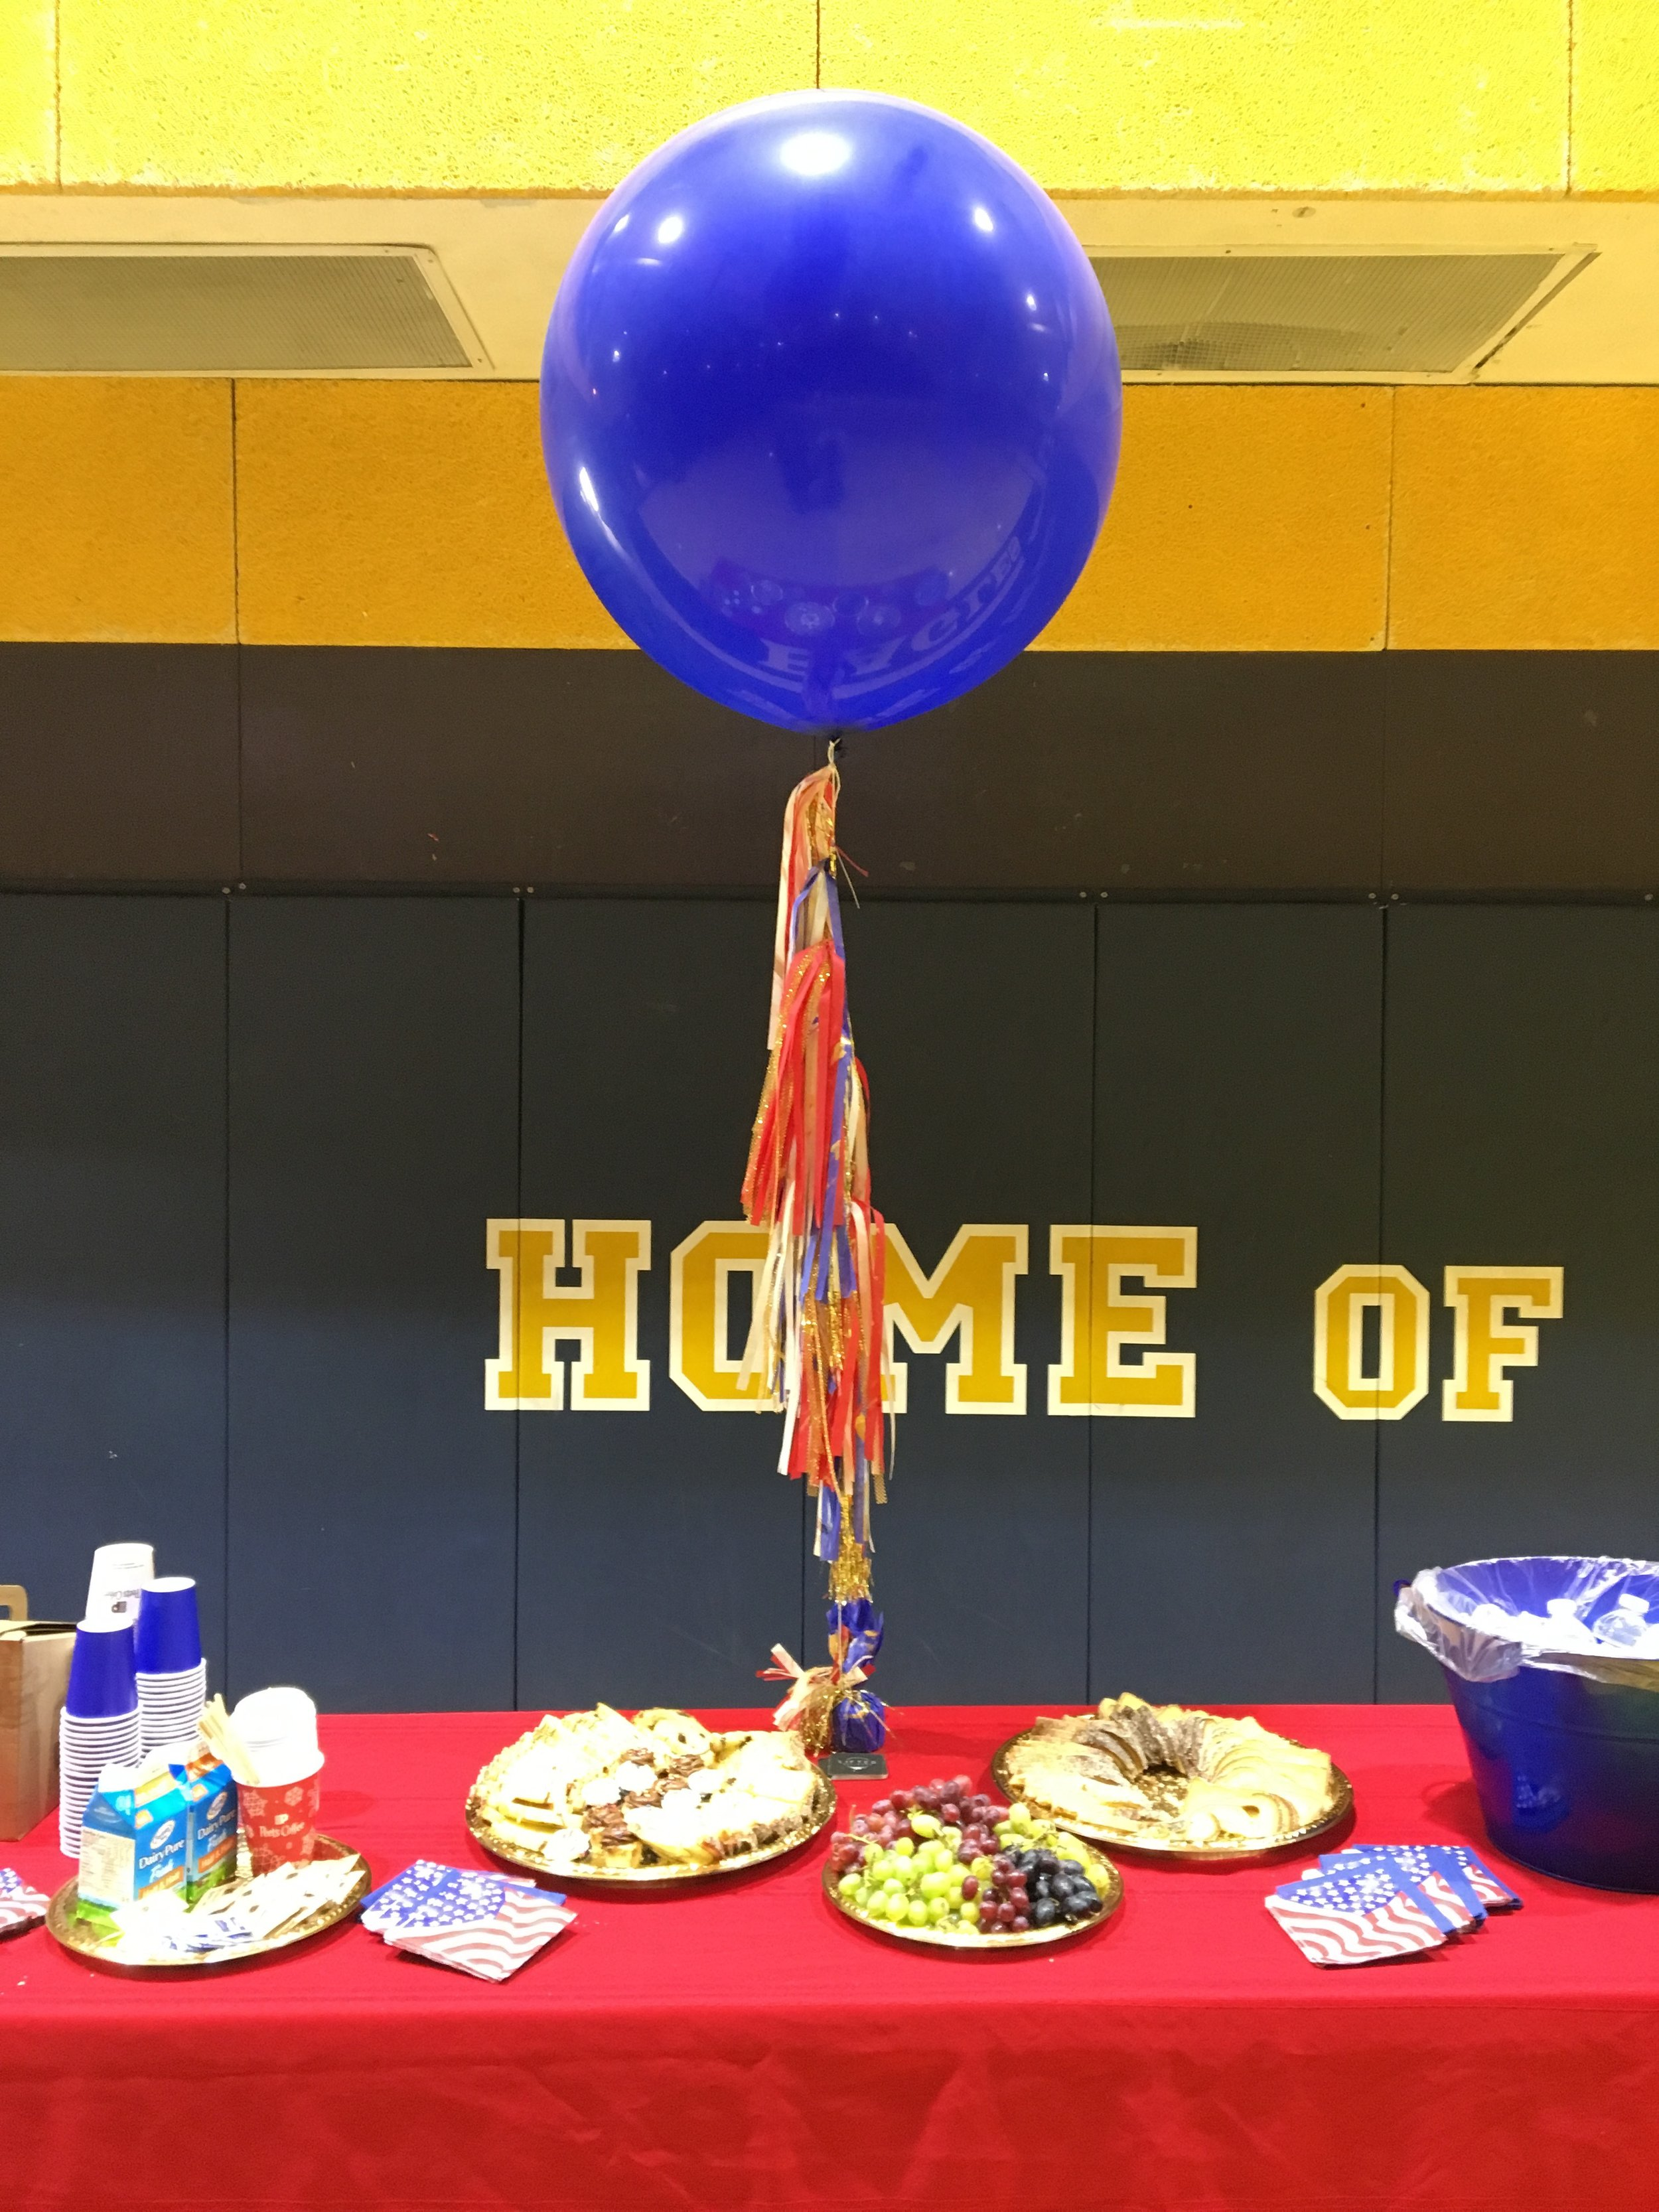 The giant, royal blue, luxury balloon hovers like fireworks above a sweet spread.